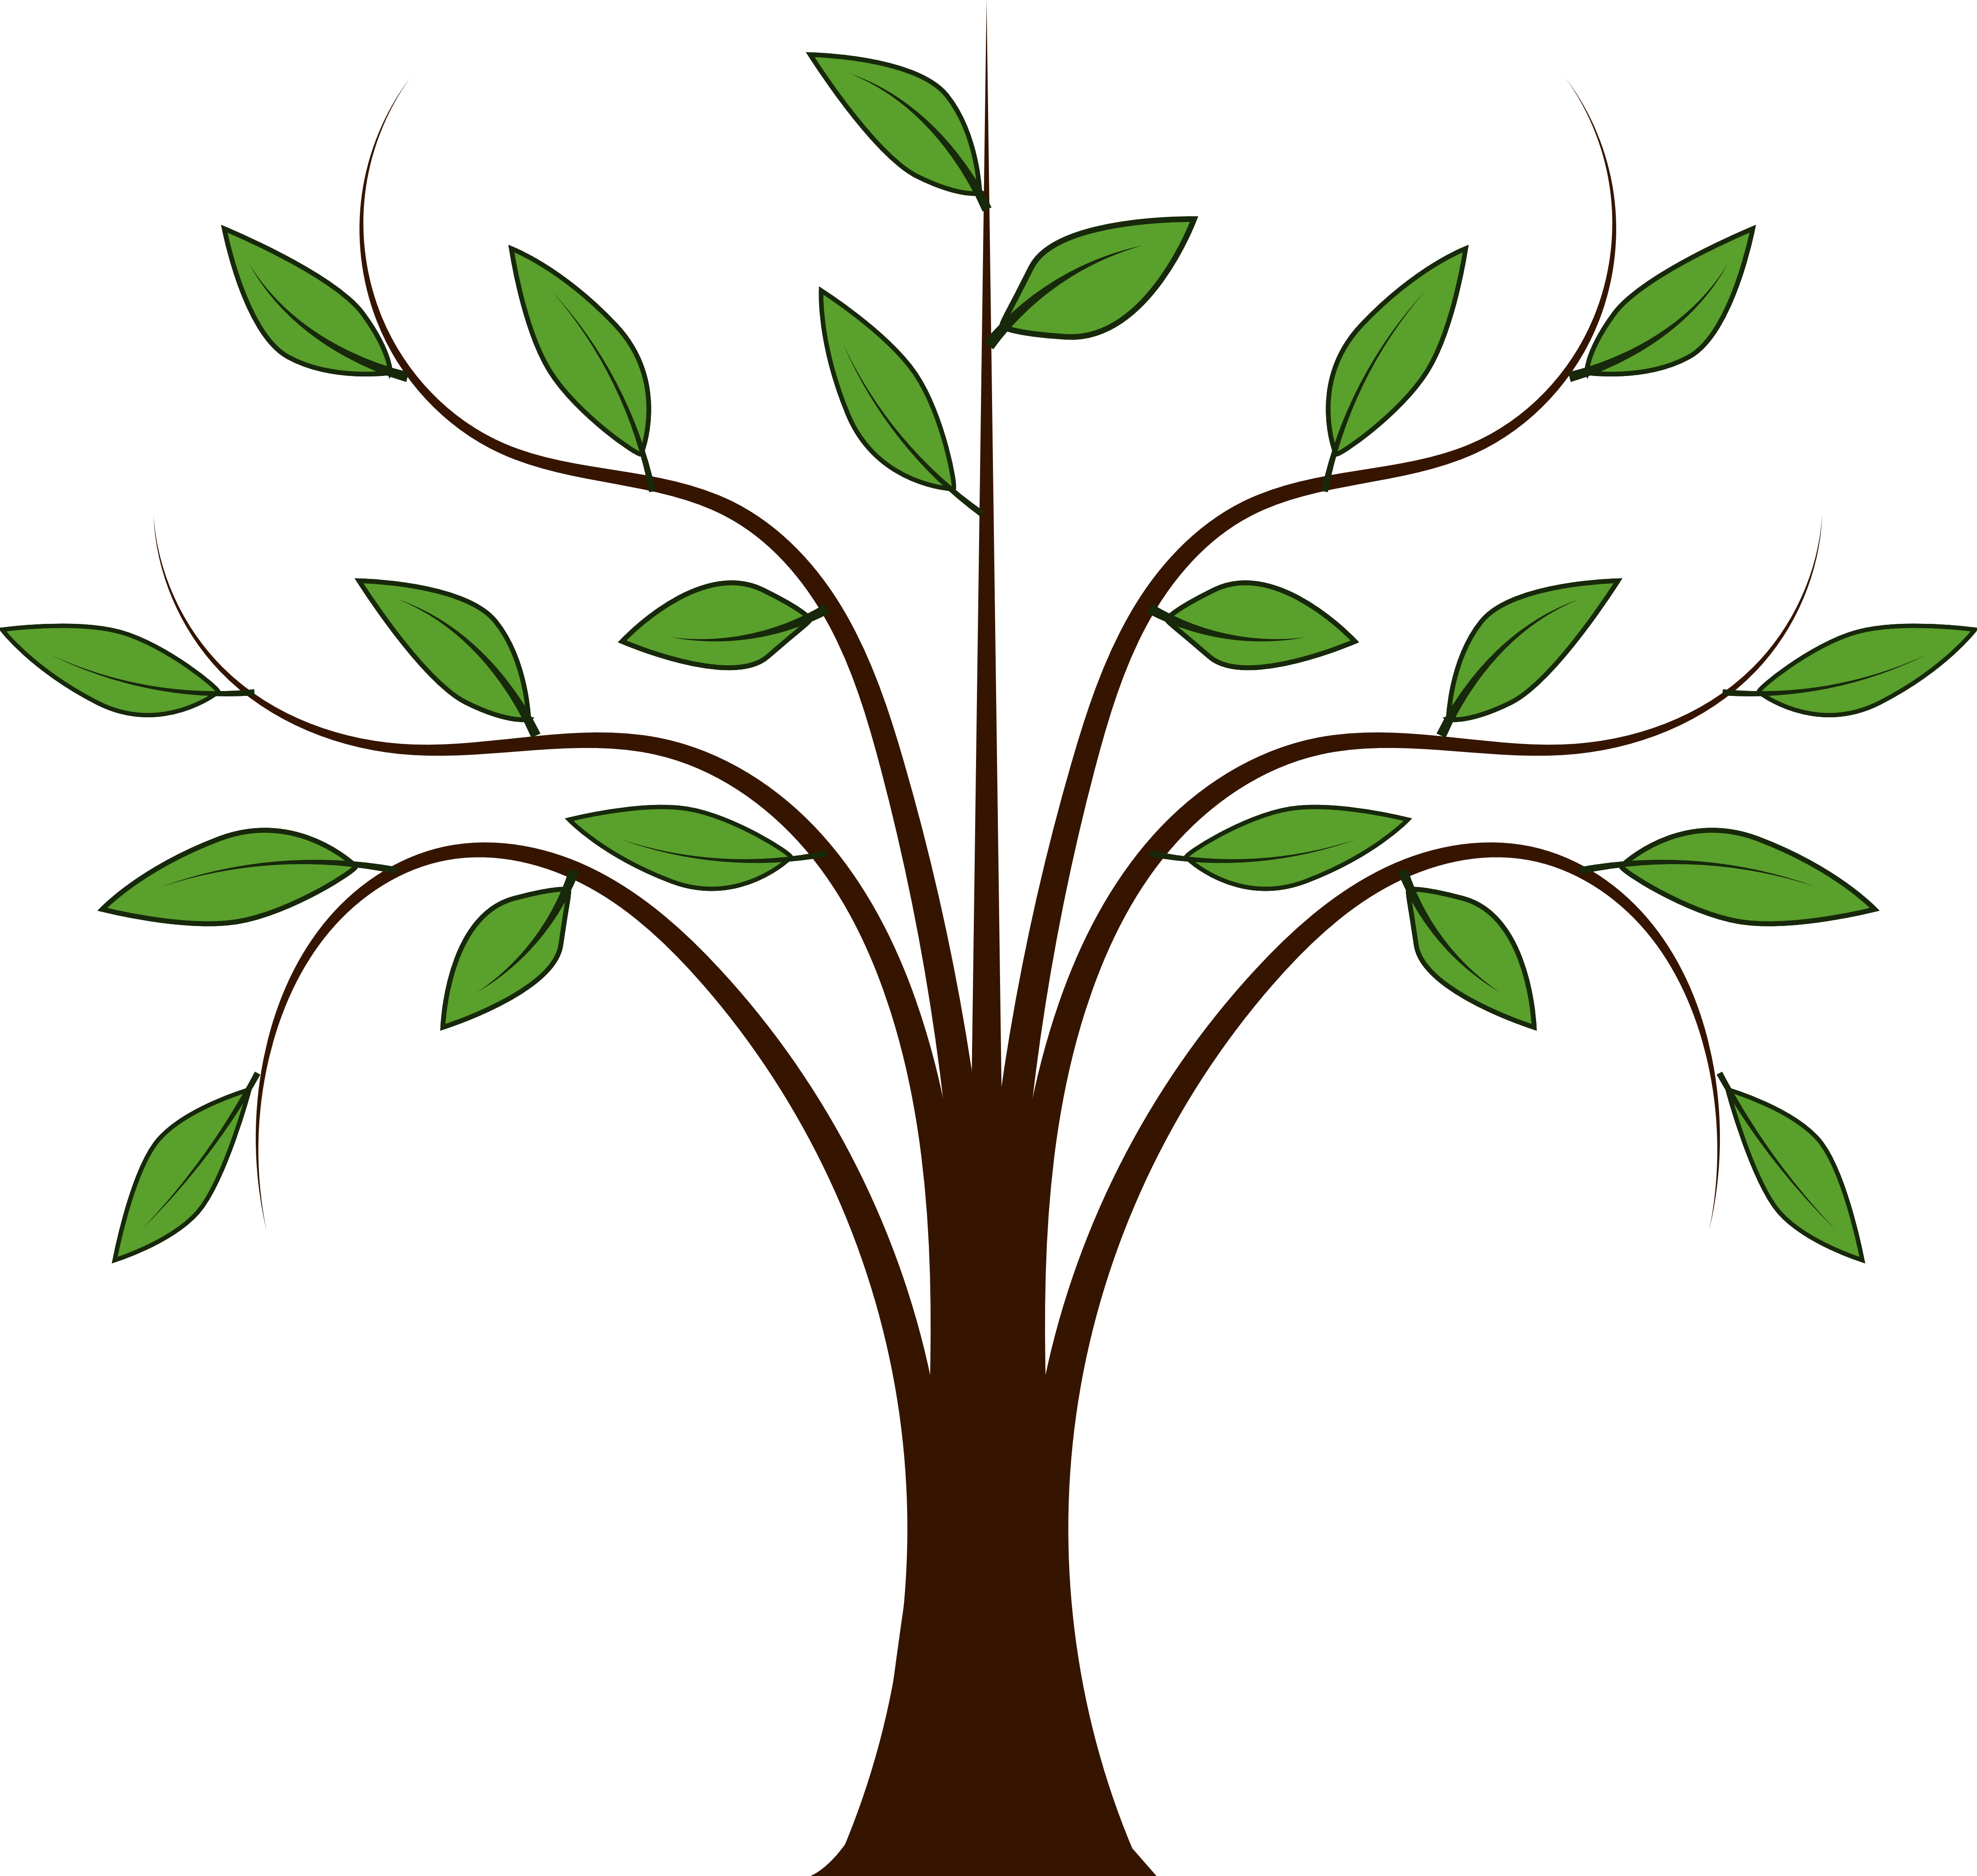 Cotton clipart simple. Tree free image